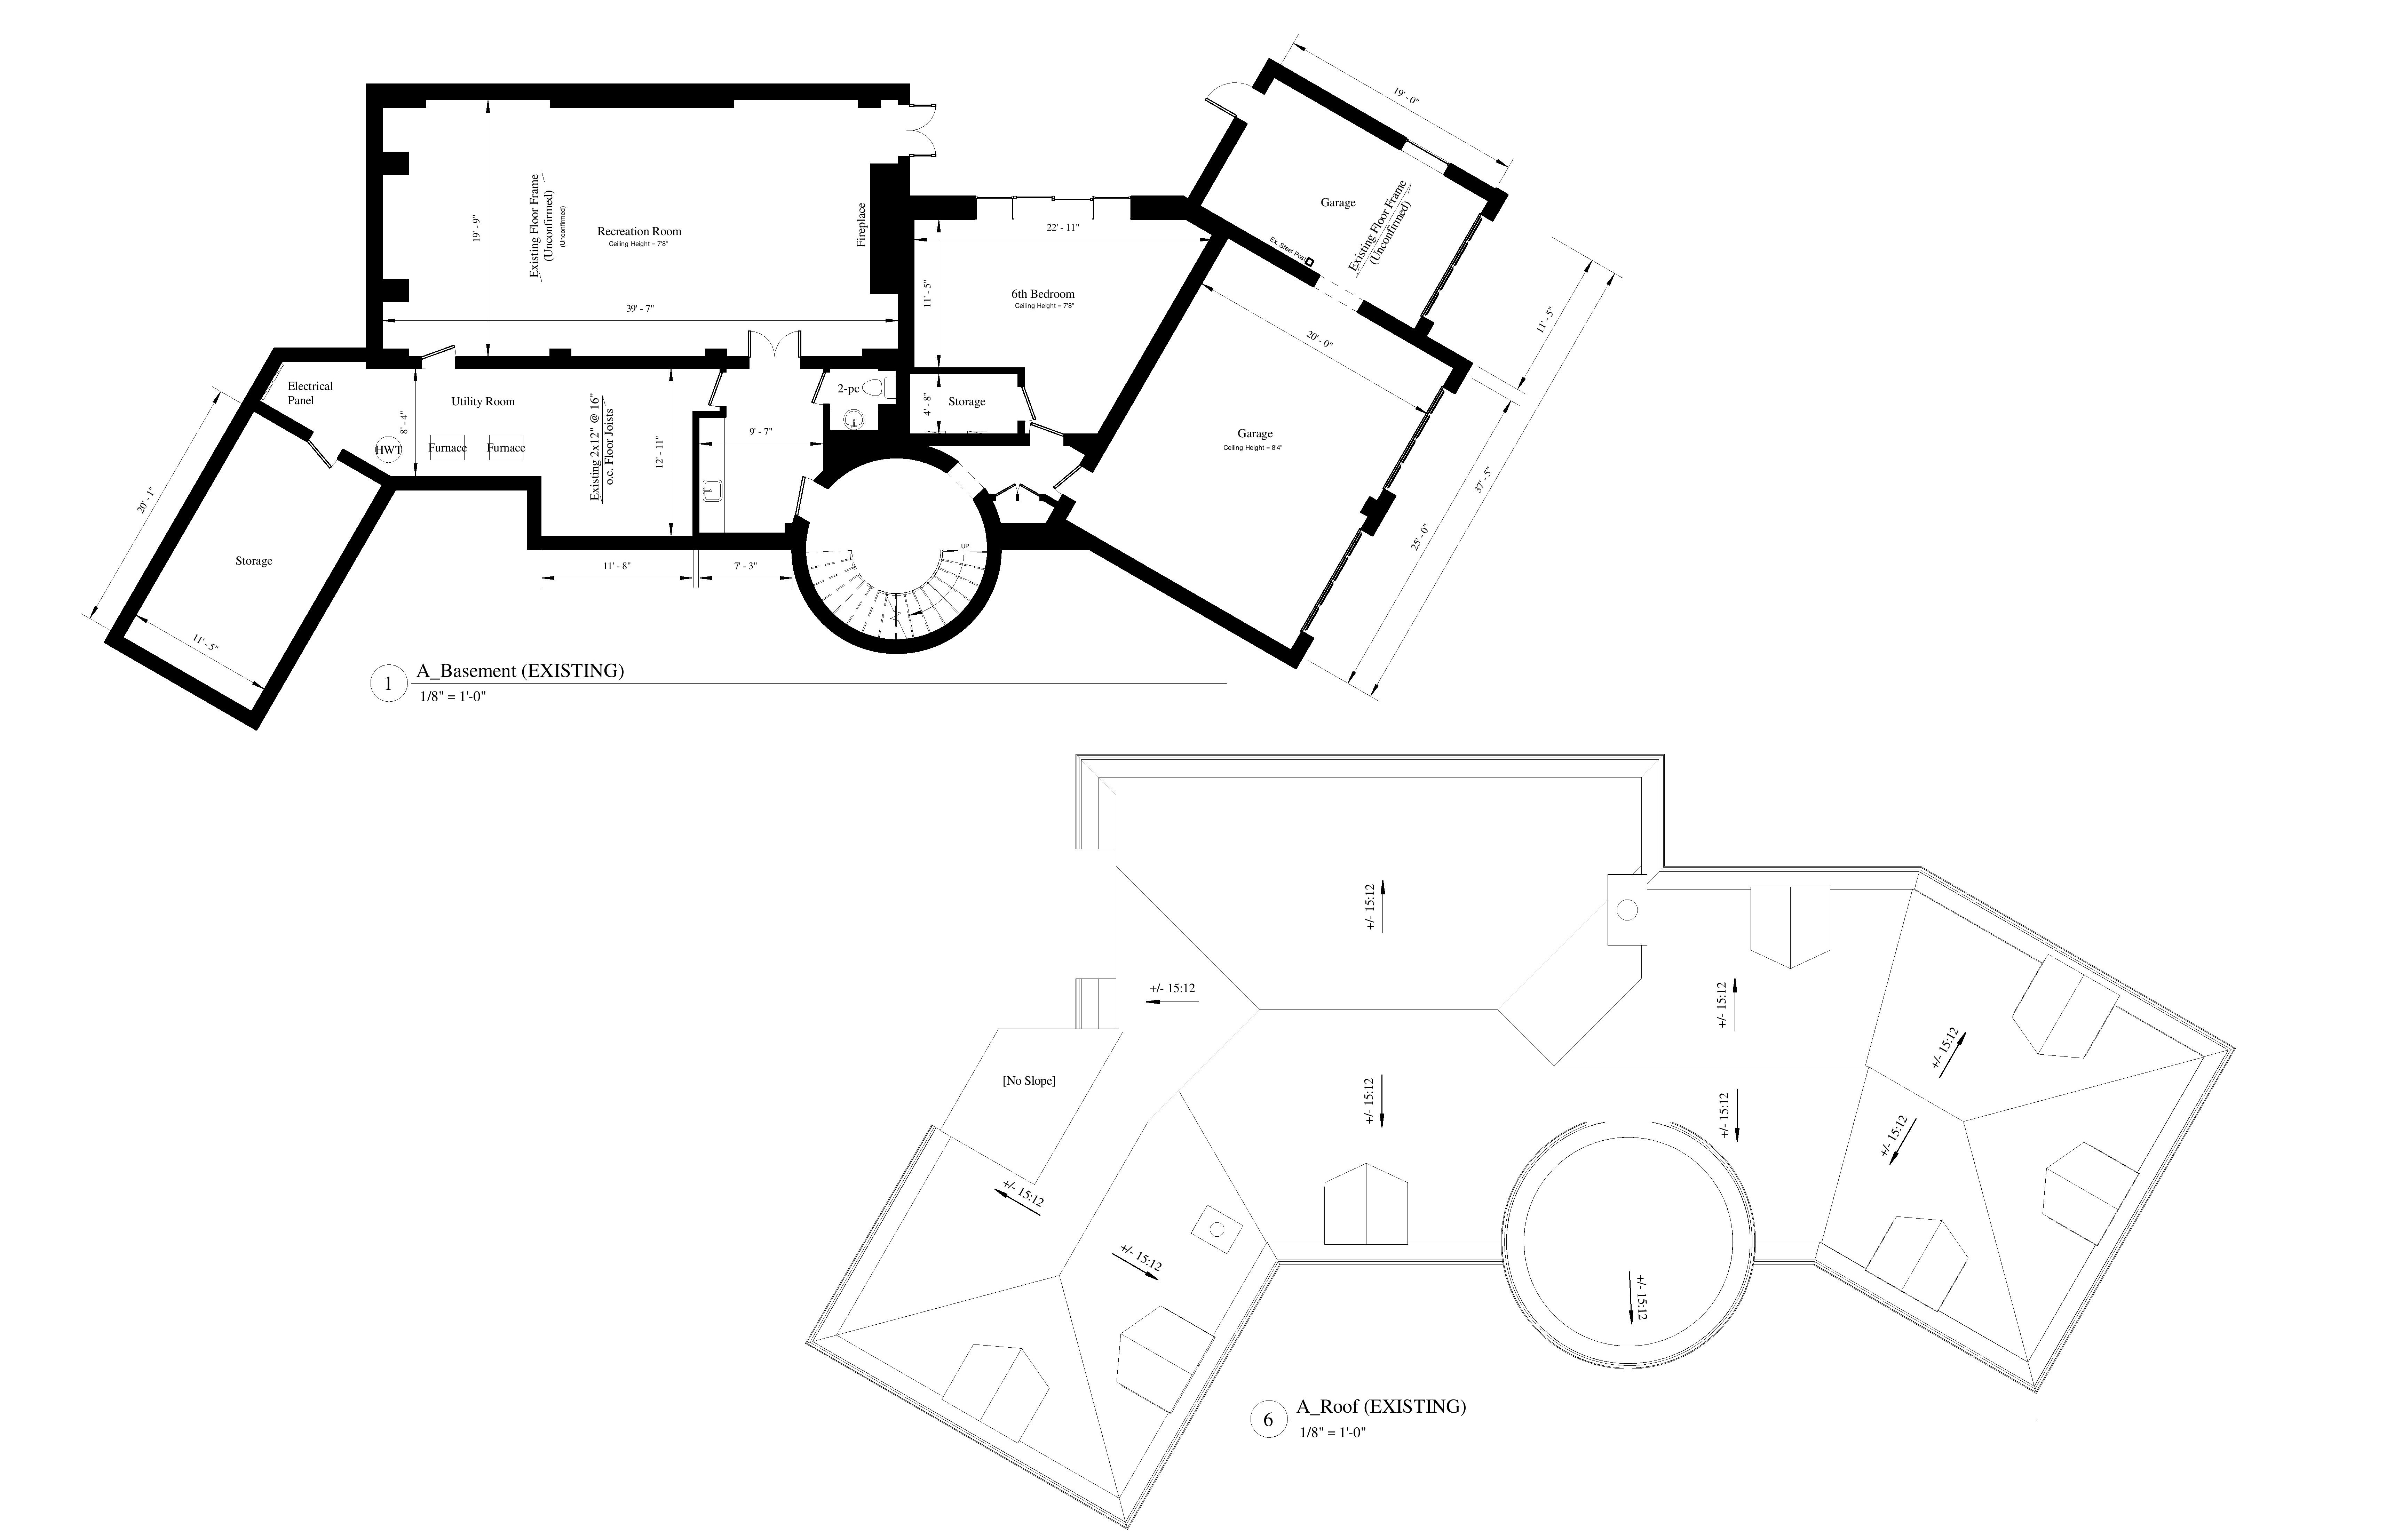 AutoCad drawings of existing floor plans and roof plans for a residential house.